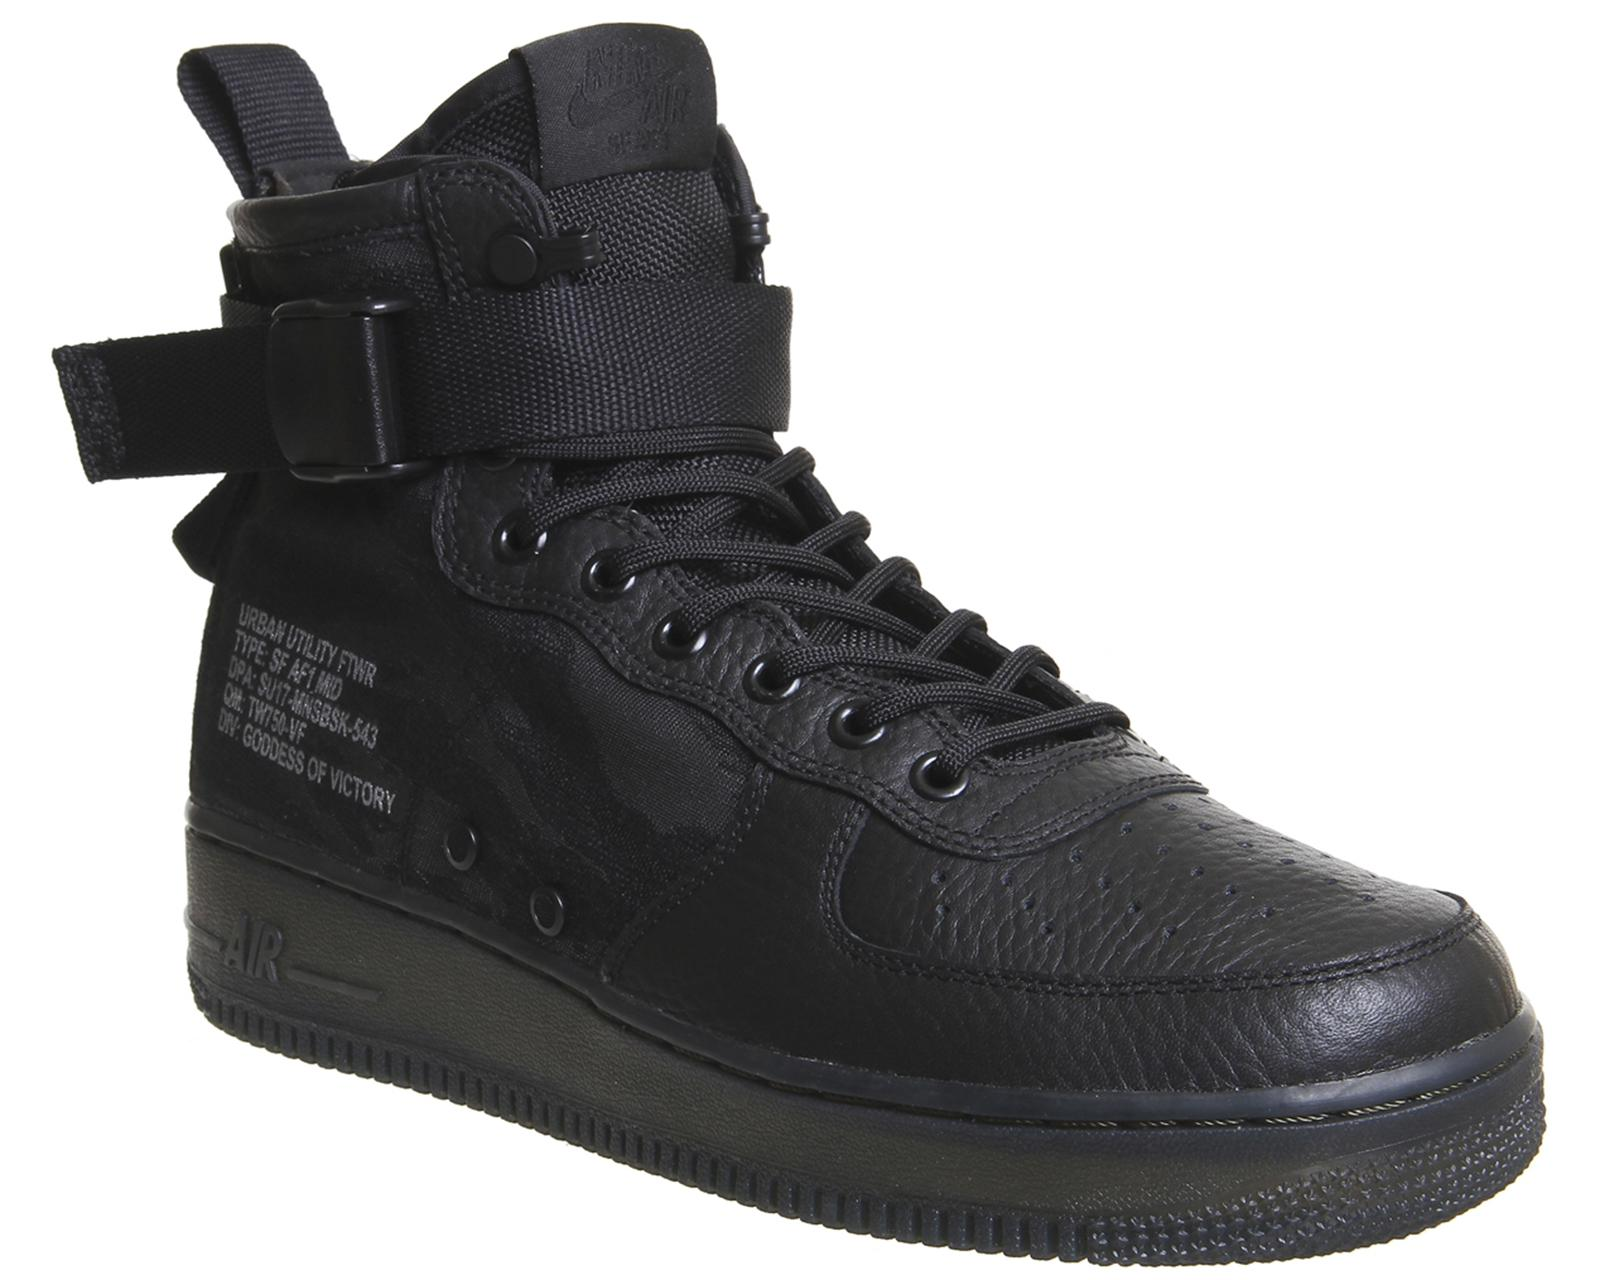 Lyst - Nike Sf Af1 Mid 17 in Black for Men ea5333776